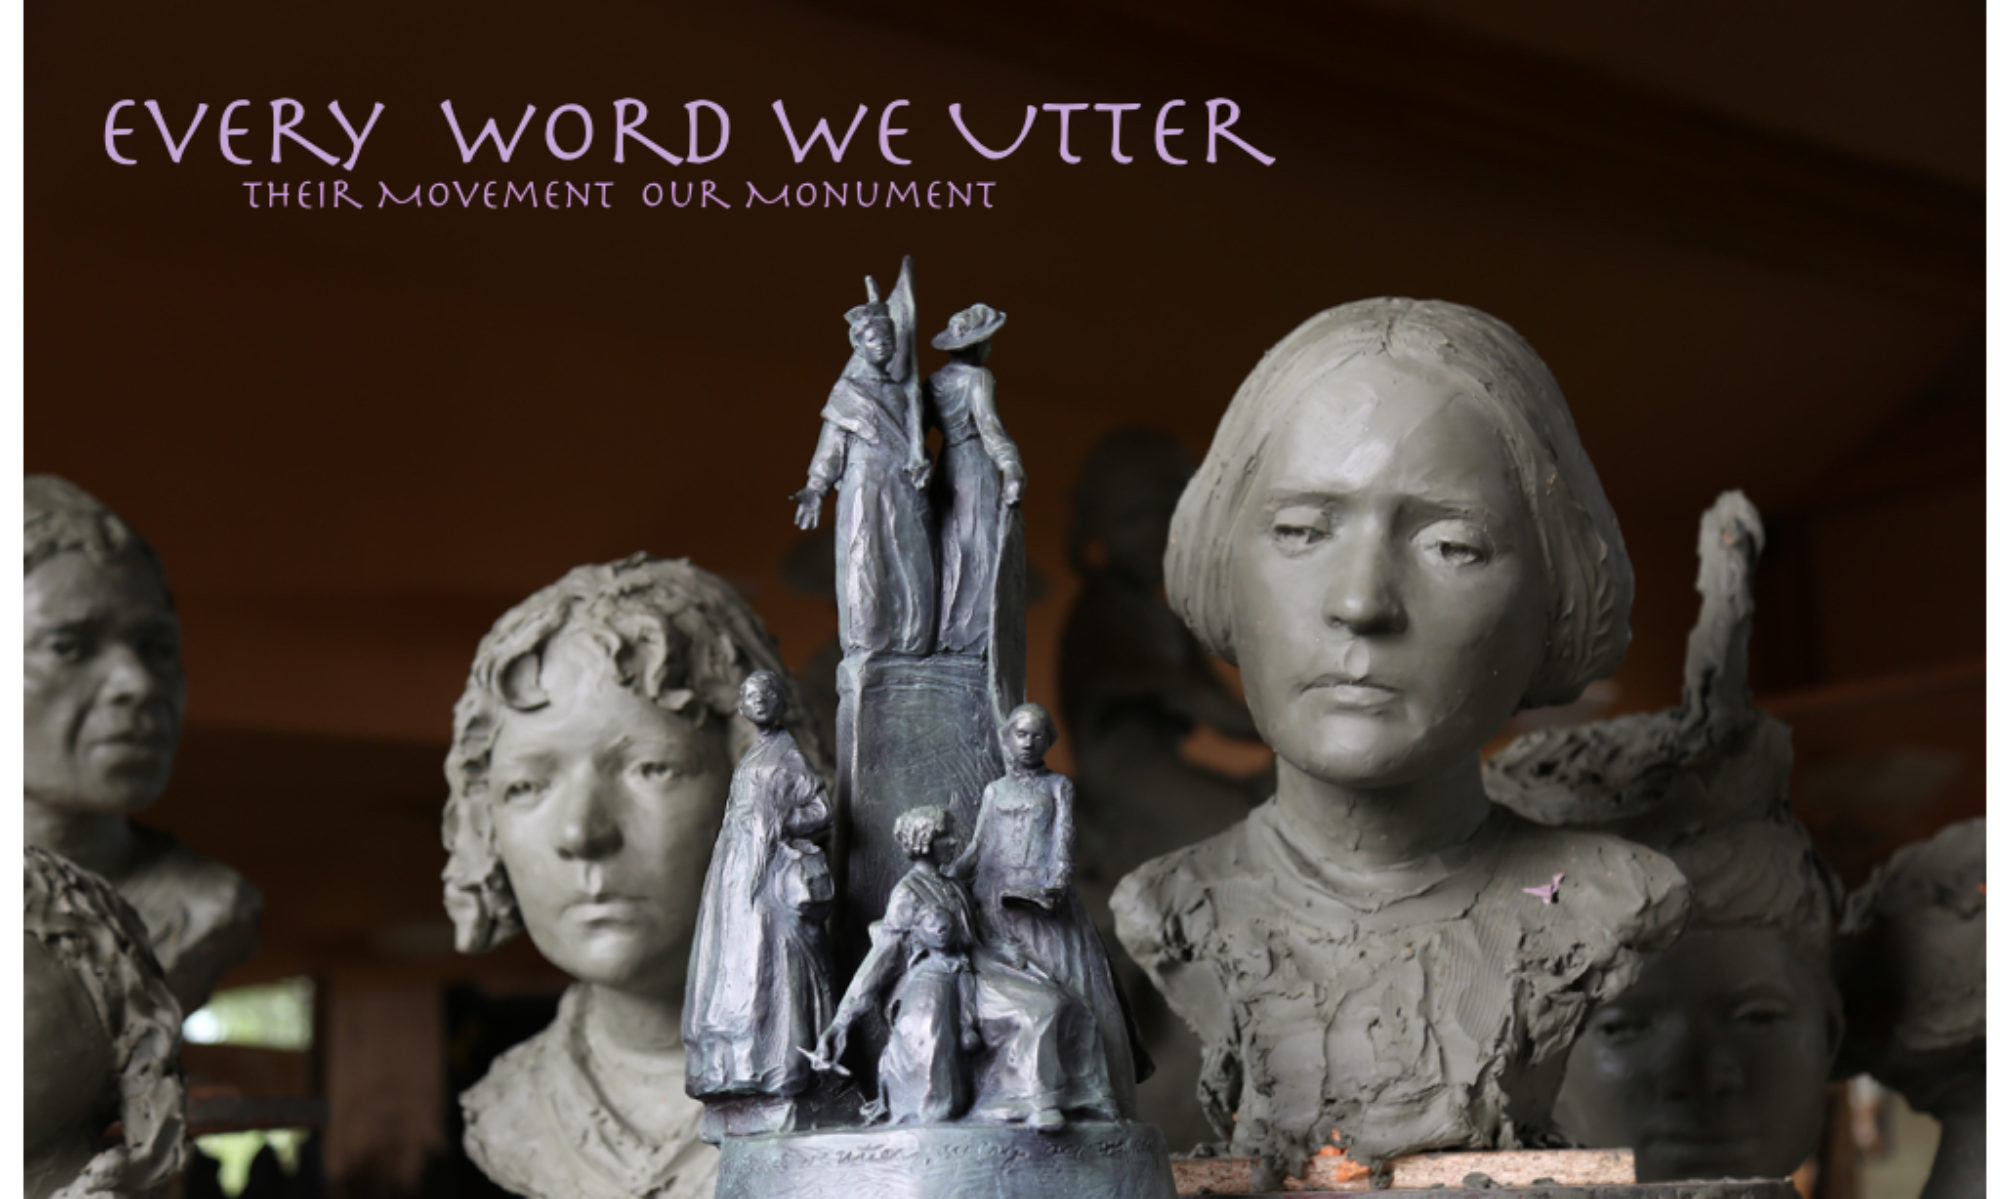 Every Word We Utter